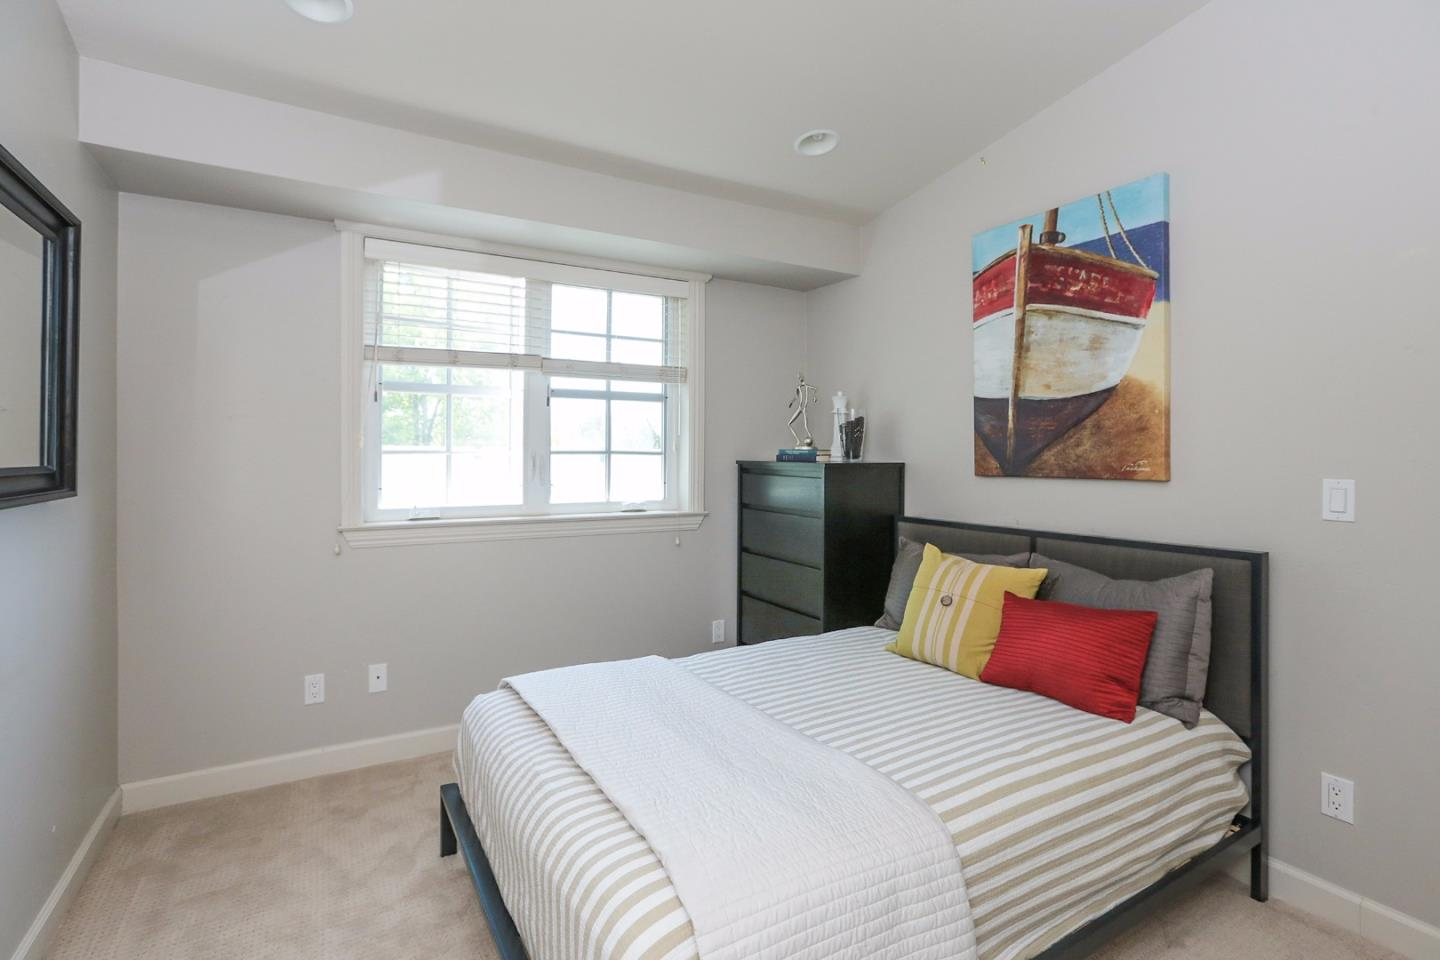 Additional photo for property listing at 1629 Ontario Dr  SUNNYVALE, CALIFORNIA 94087